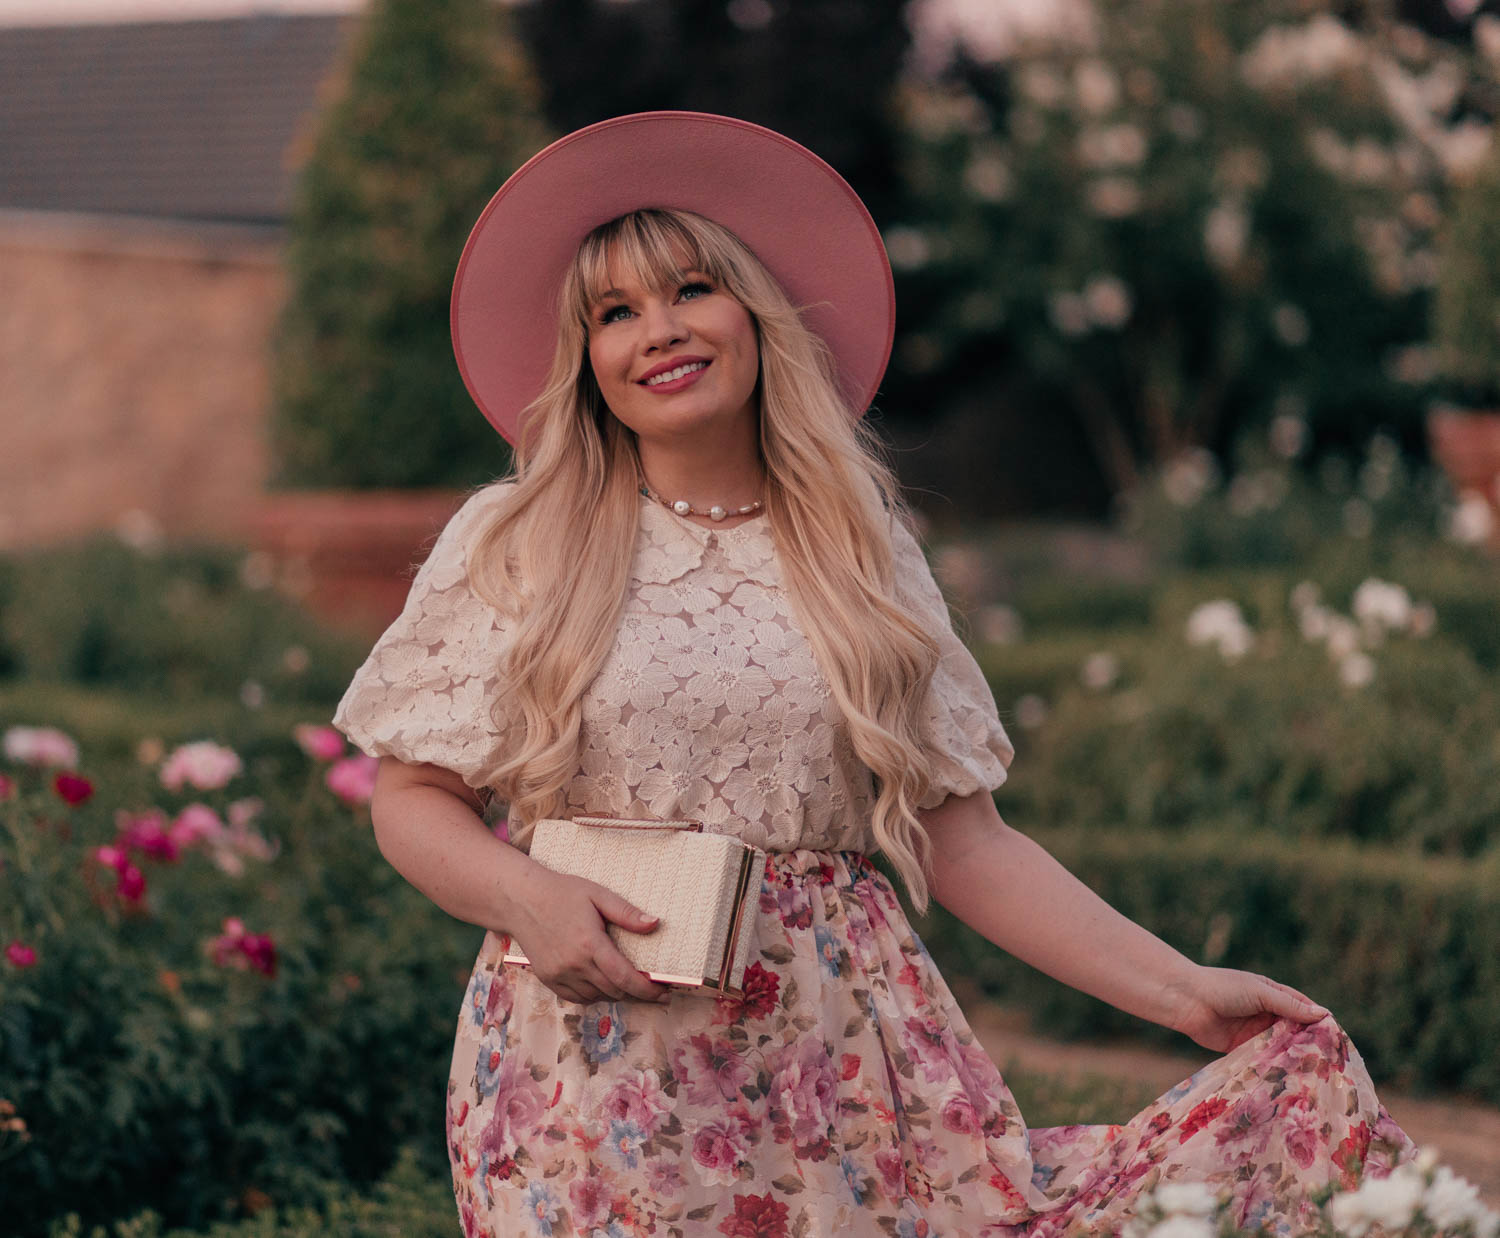 Feminine Fashion Blogger Elizabeth Hugen of Lizzie in Lace shares her top 5 Feminine Summer Essentials for the Girly Girl including a Chicwish Puff Sleeve Top